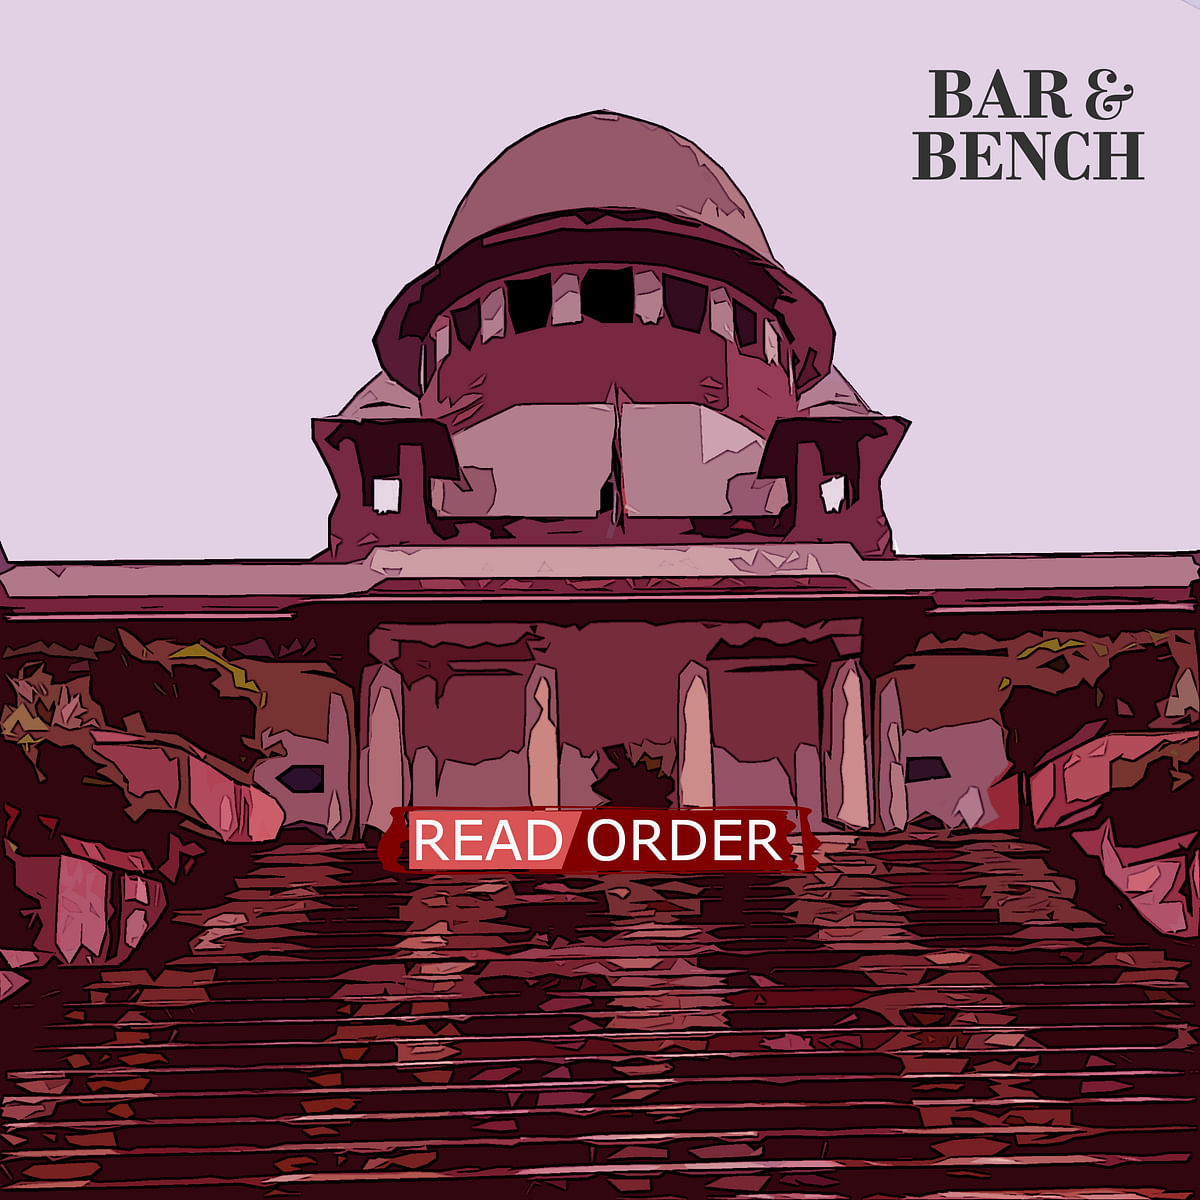 Supreme Court Read Order tall